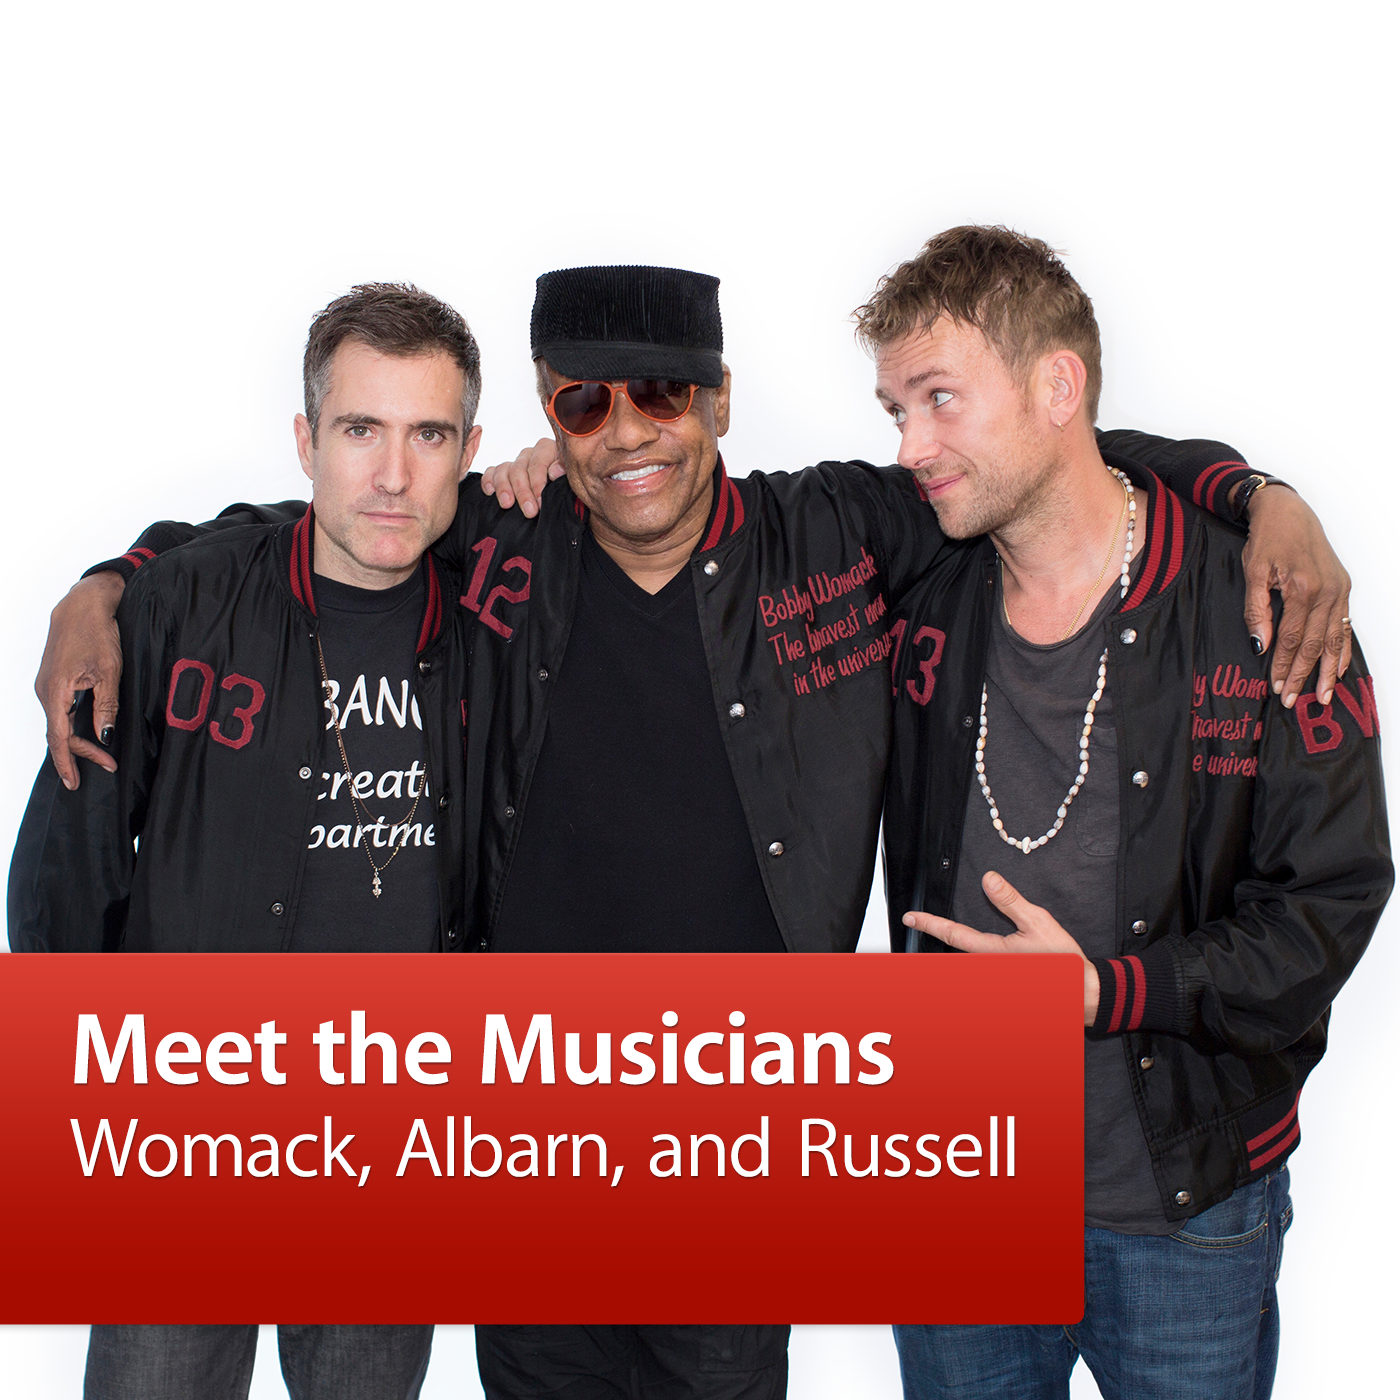 Womack, Albarn, and Russell: Meet the Musicians